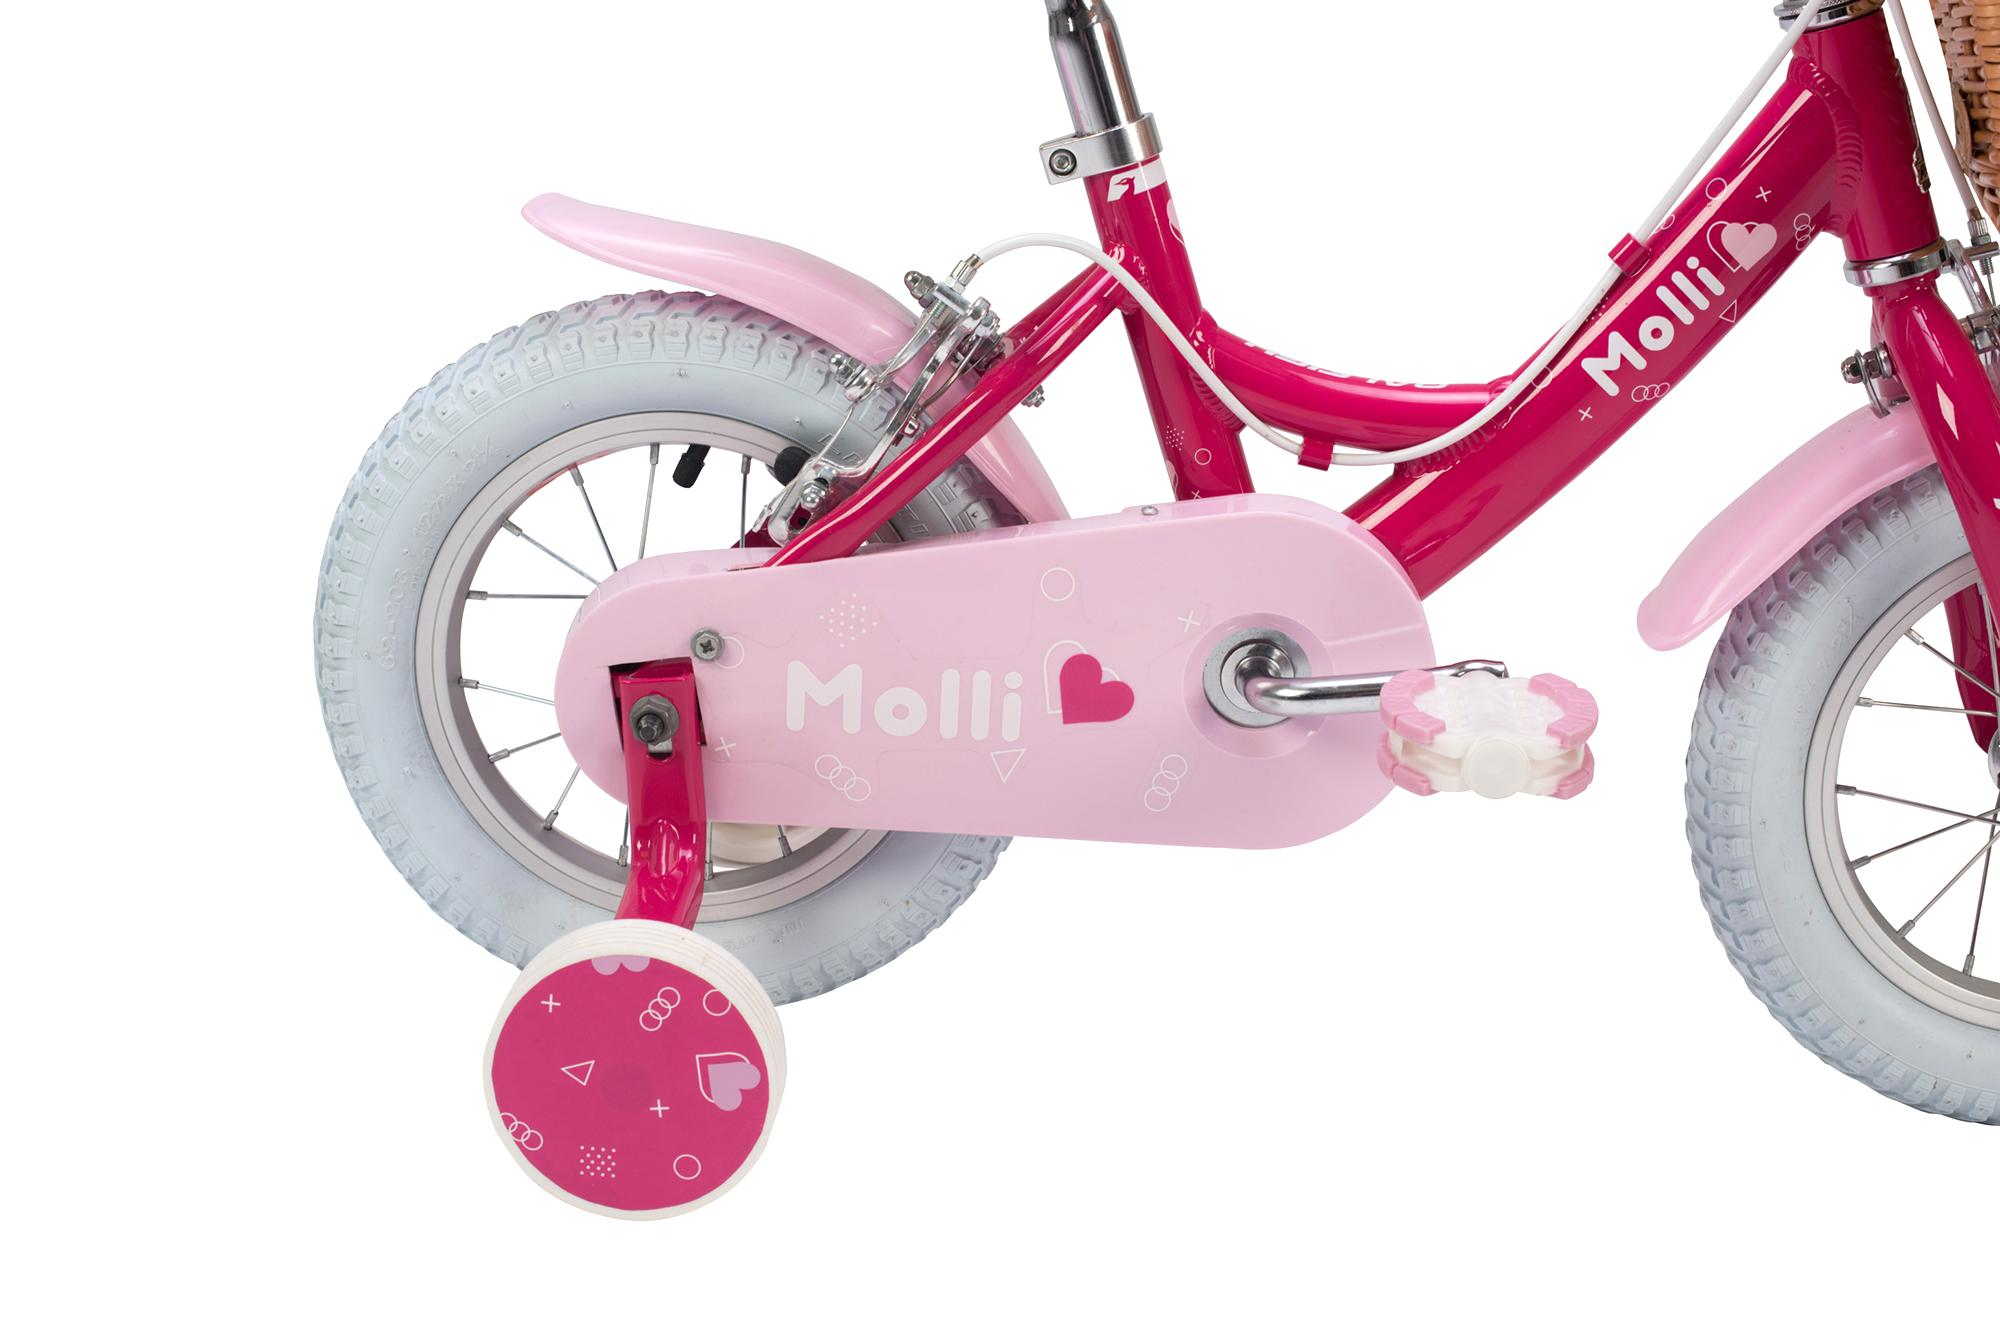 rear view of the Raleigh Molli 12 inch kid girls bike with stabilisers